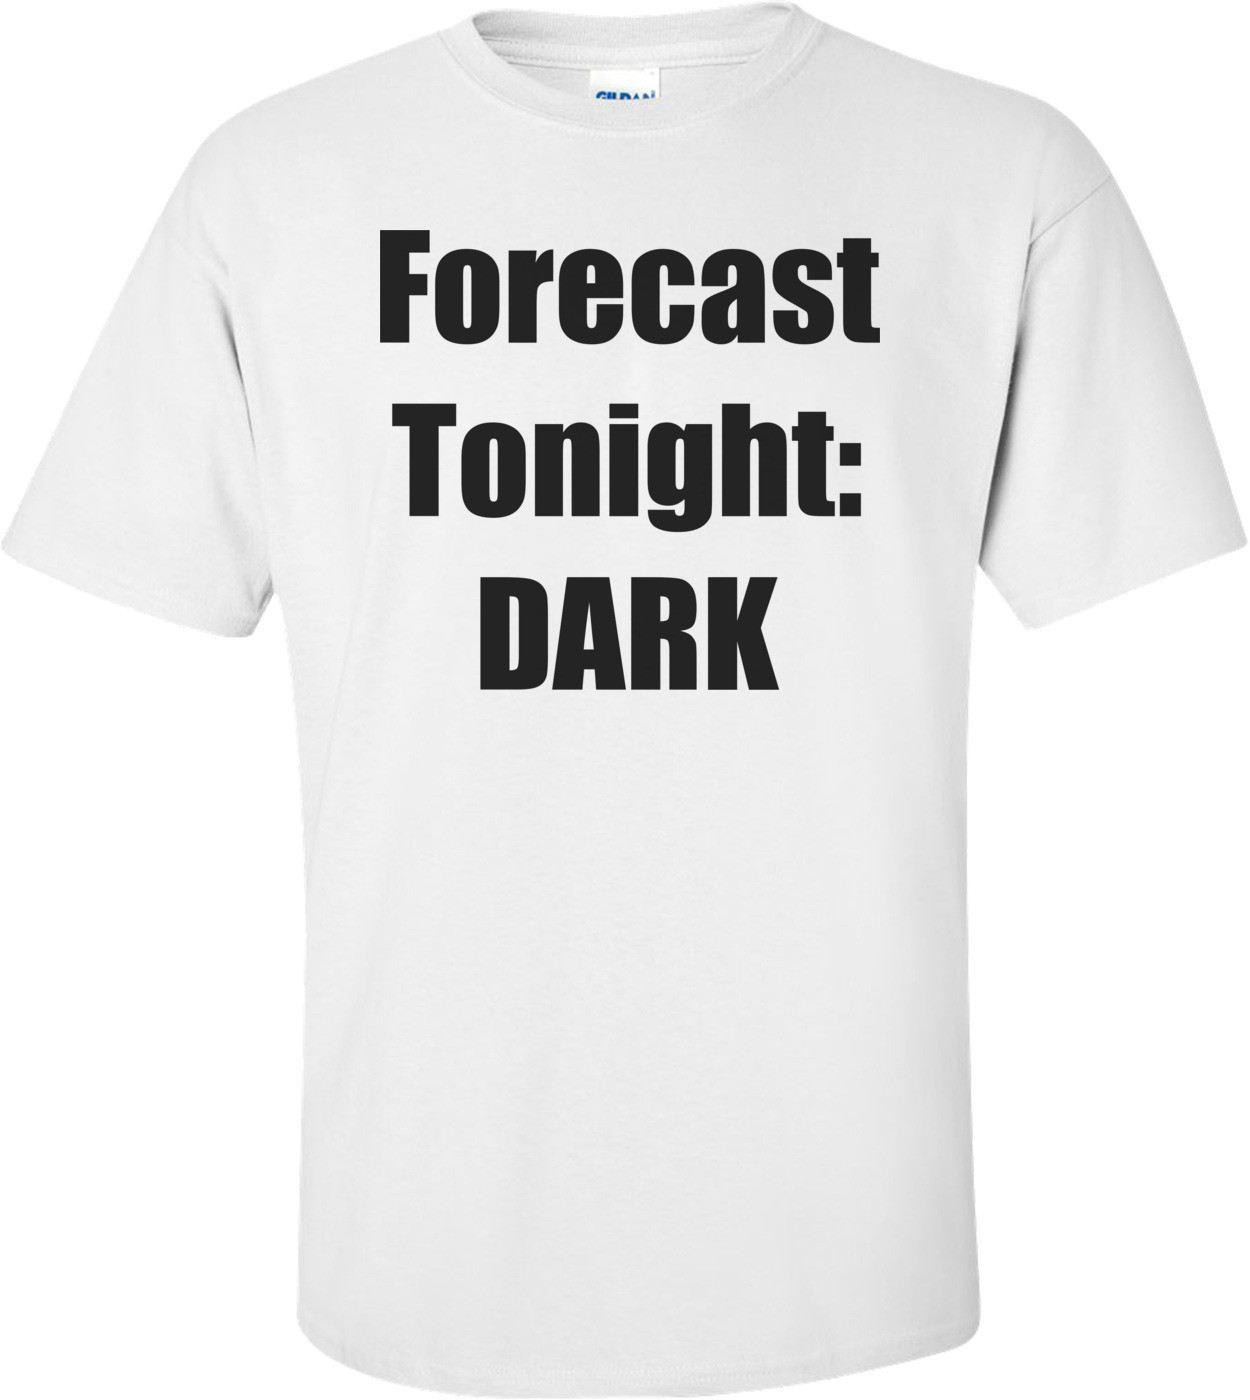 Forecast Tonight: DARK Shirt